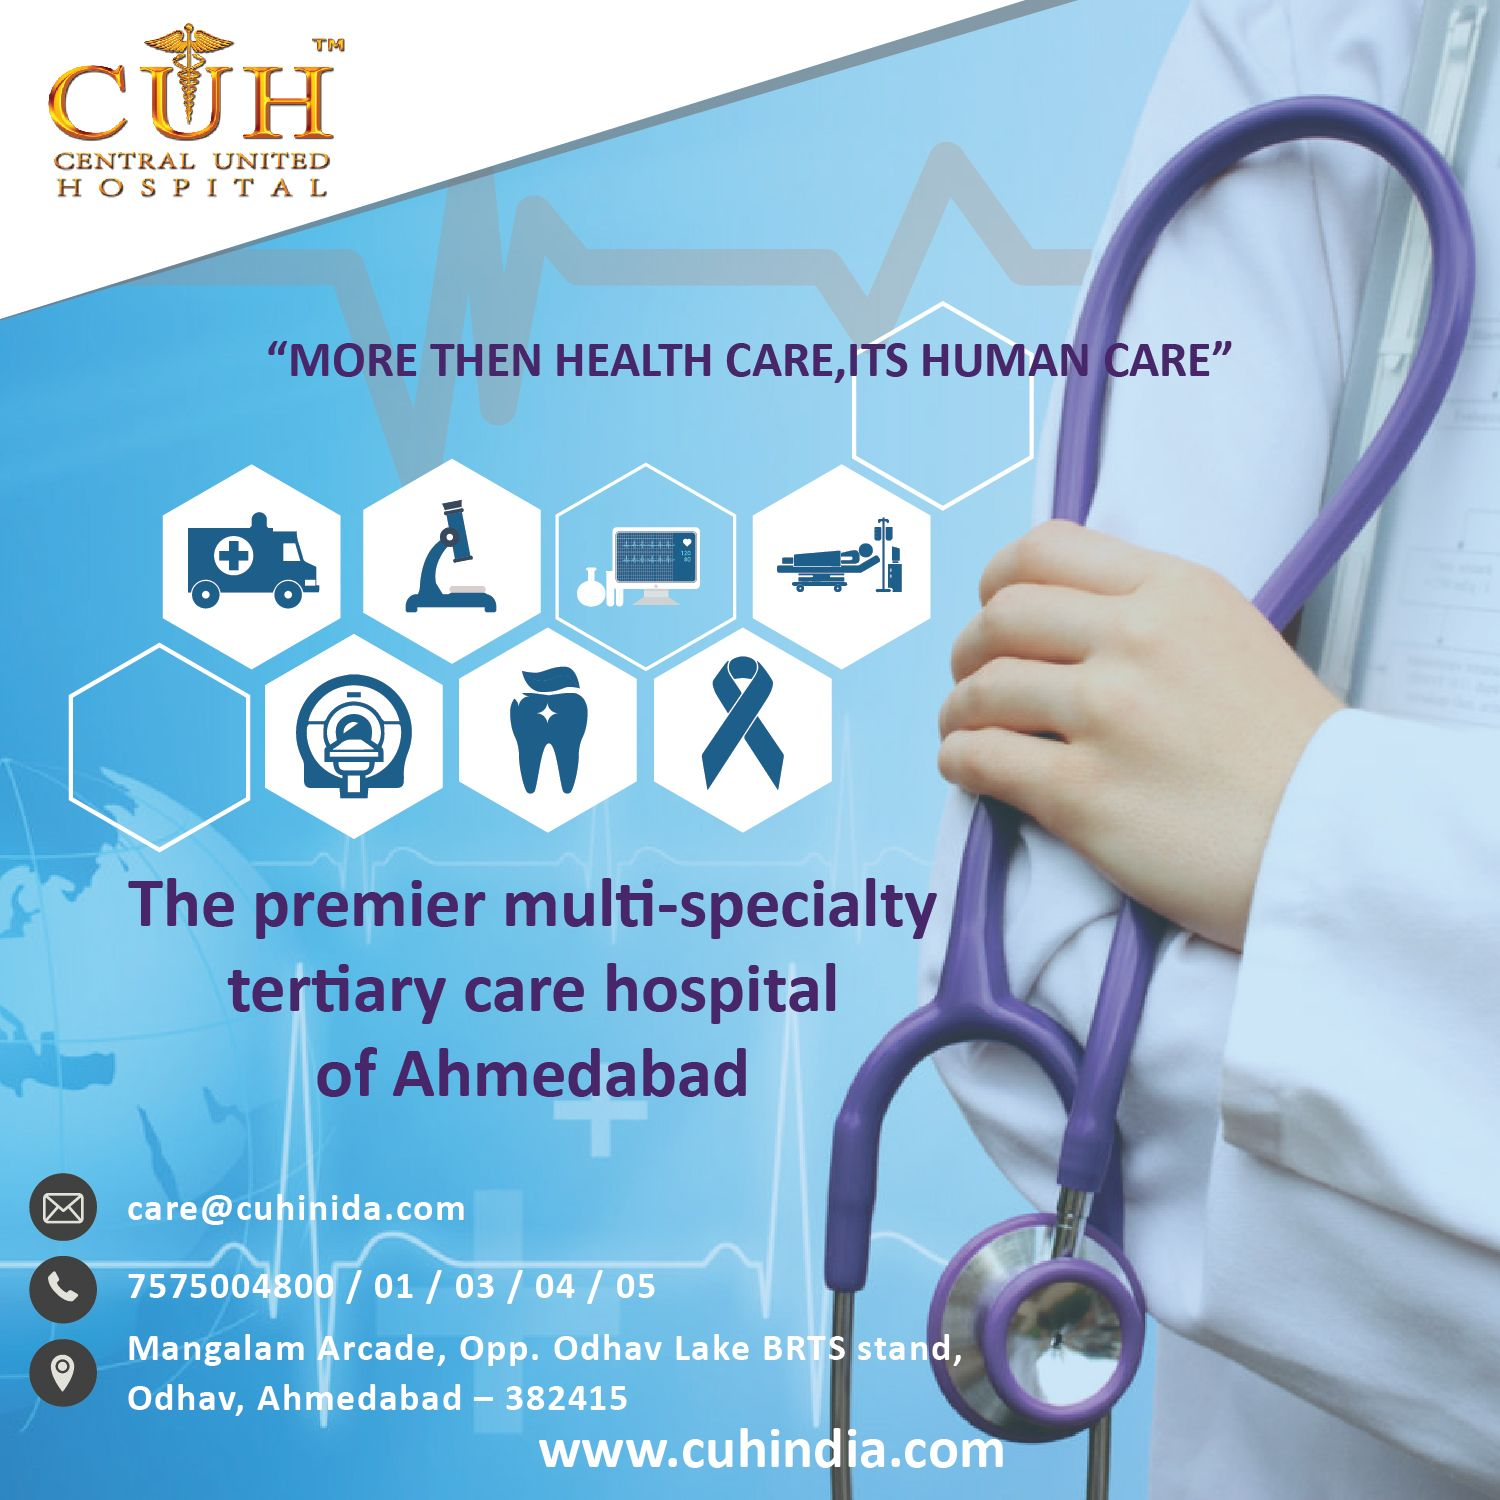 The premier MultiSpecialty tertiary care Hospital of